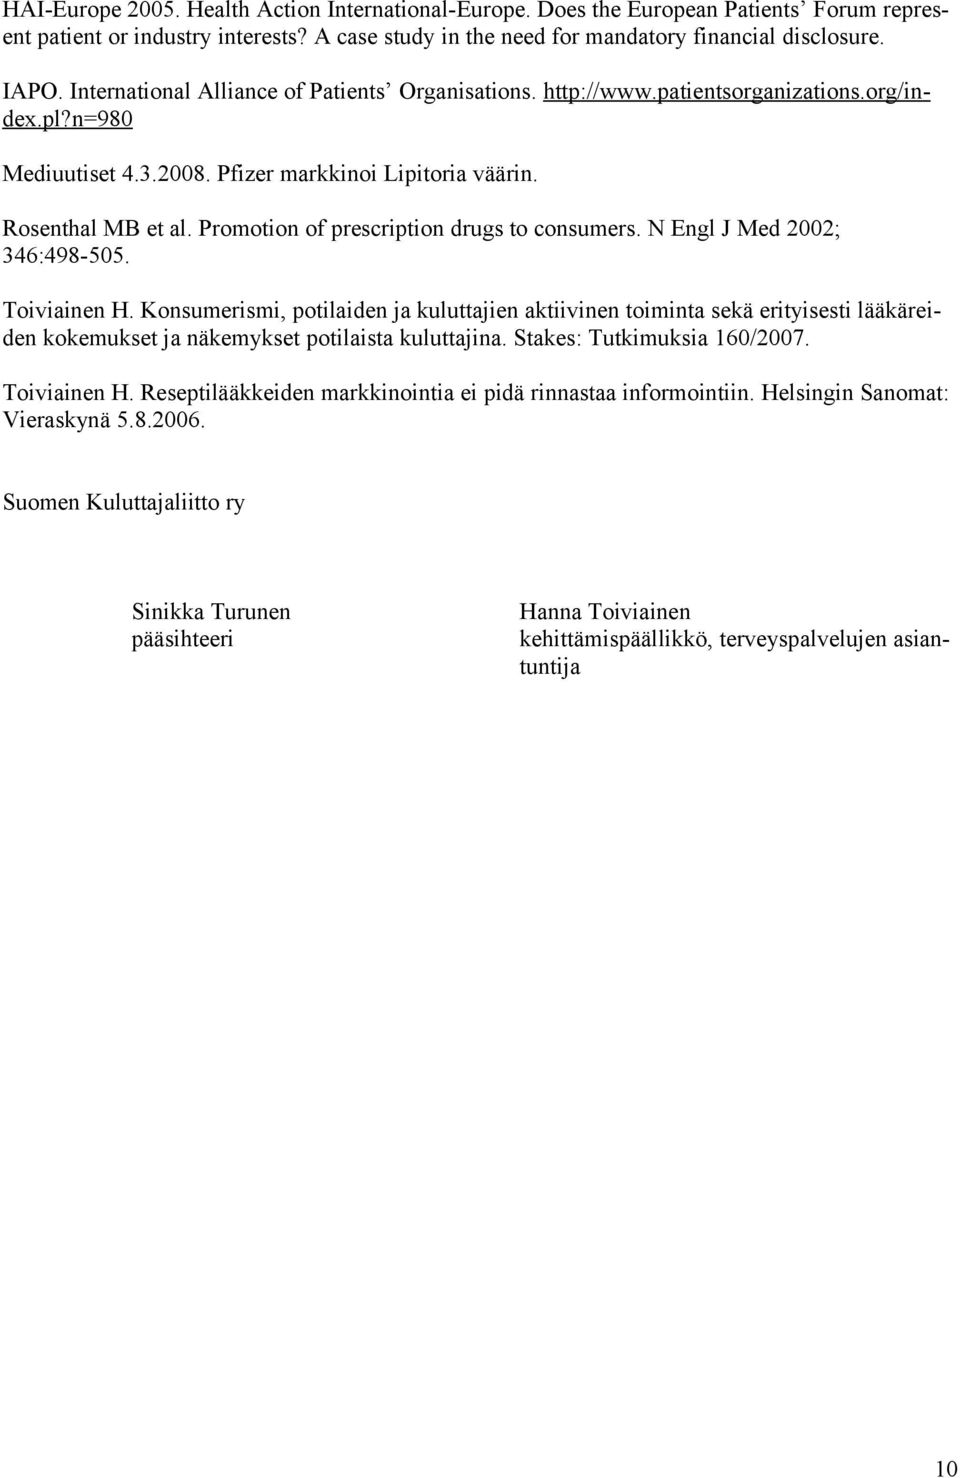 Promotion of prescription drugs to consumers. N Engl J Med 2002; 346:498-505. Toiviainen H.